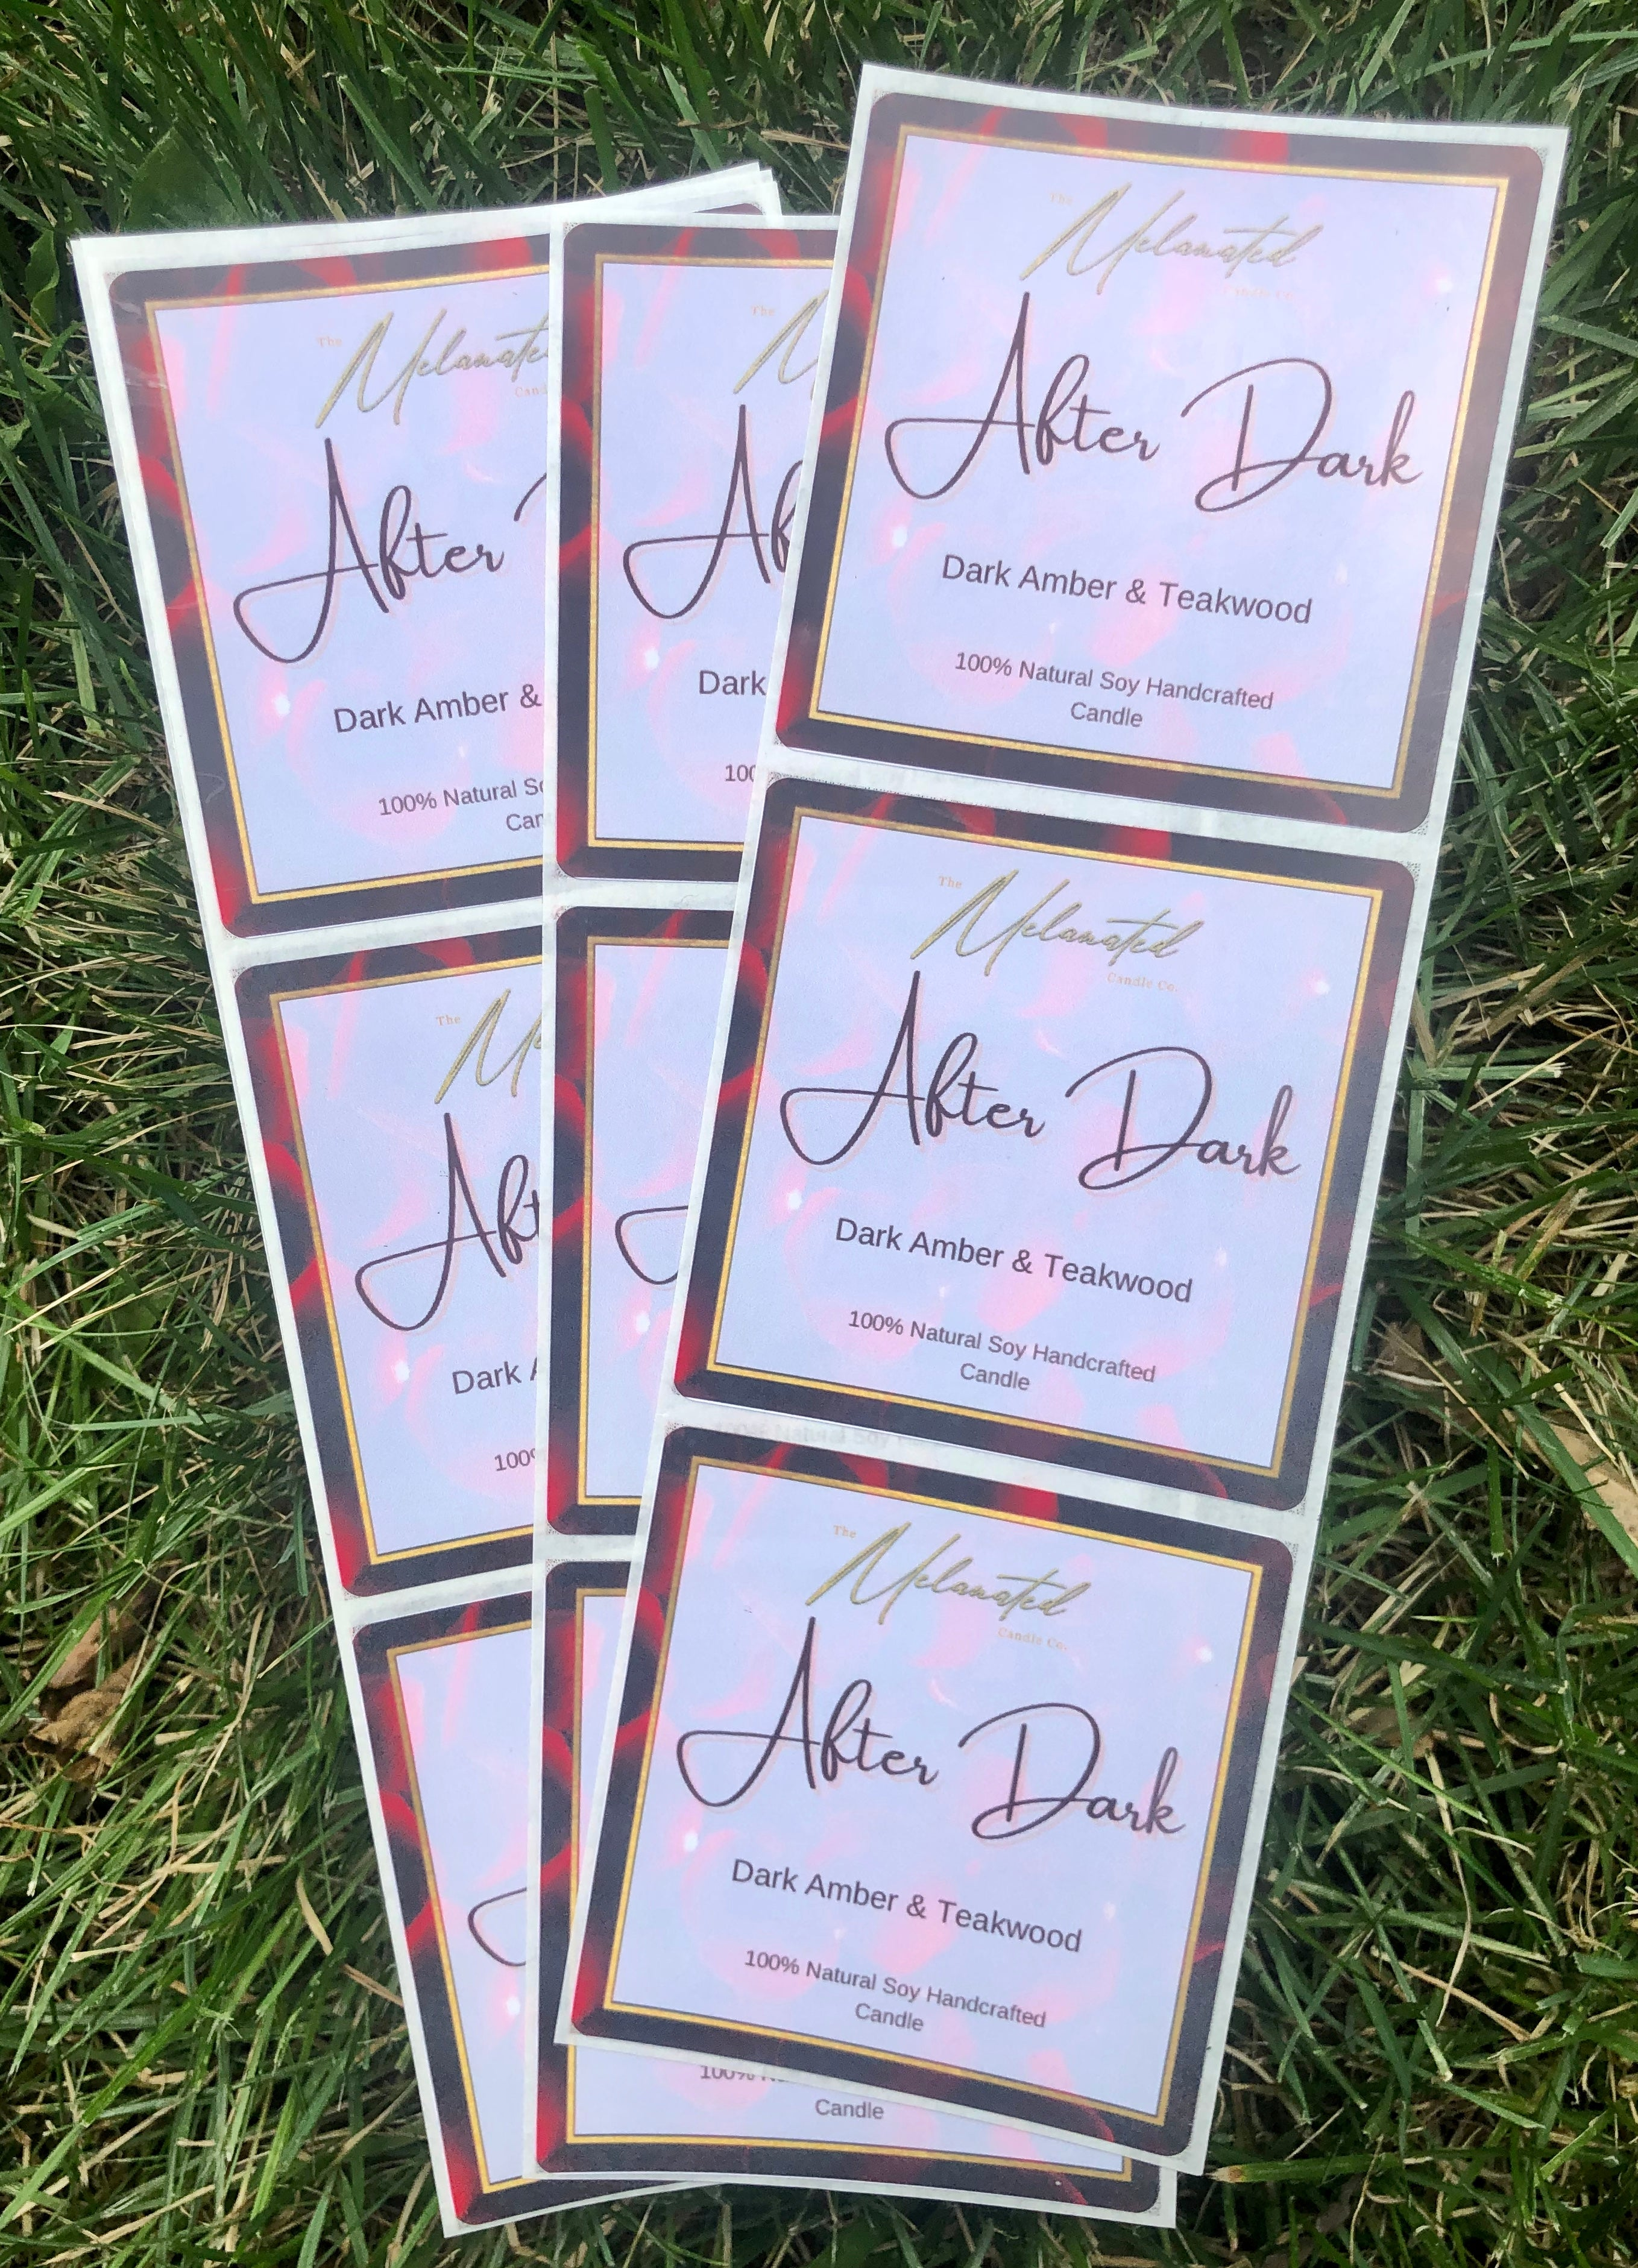 After Dark - Melanated Candle Co 3x3 inch labels